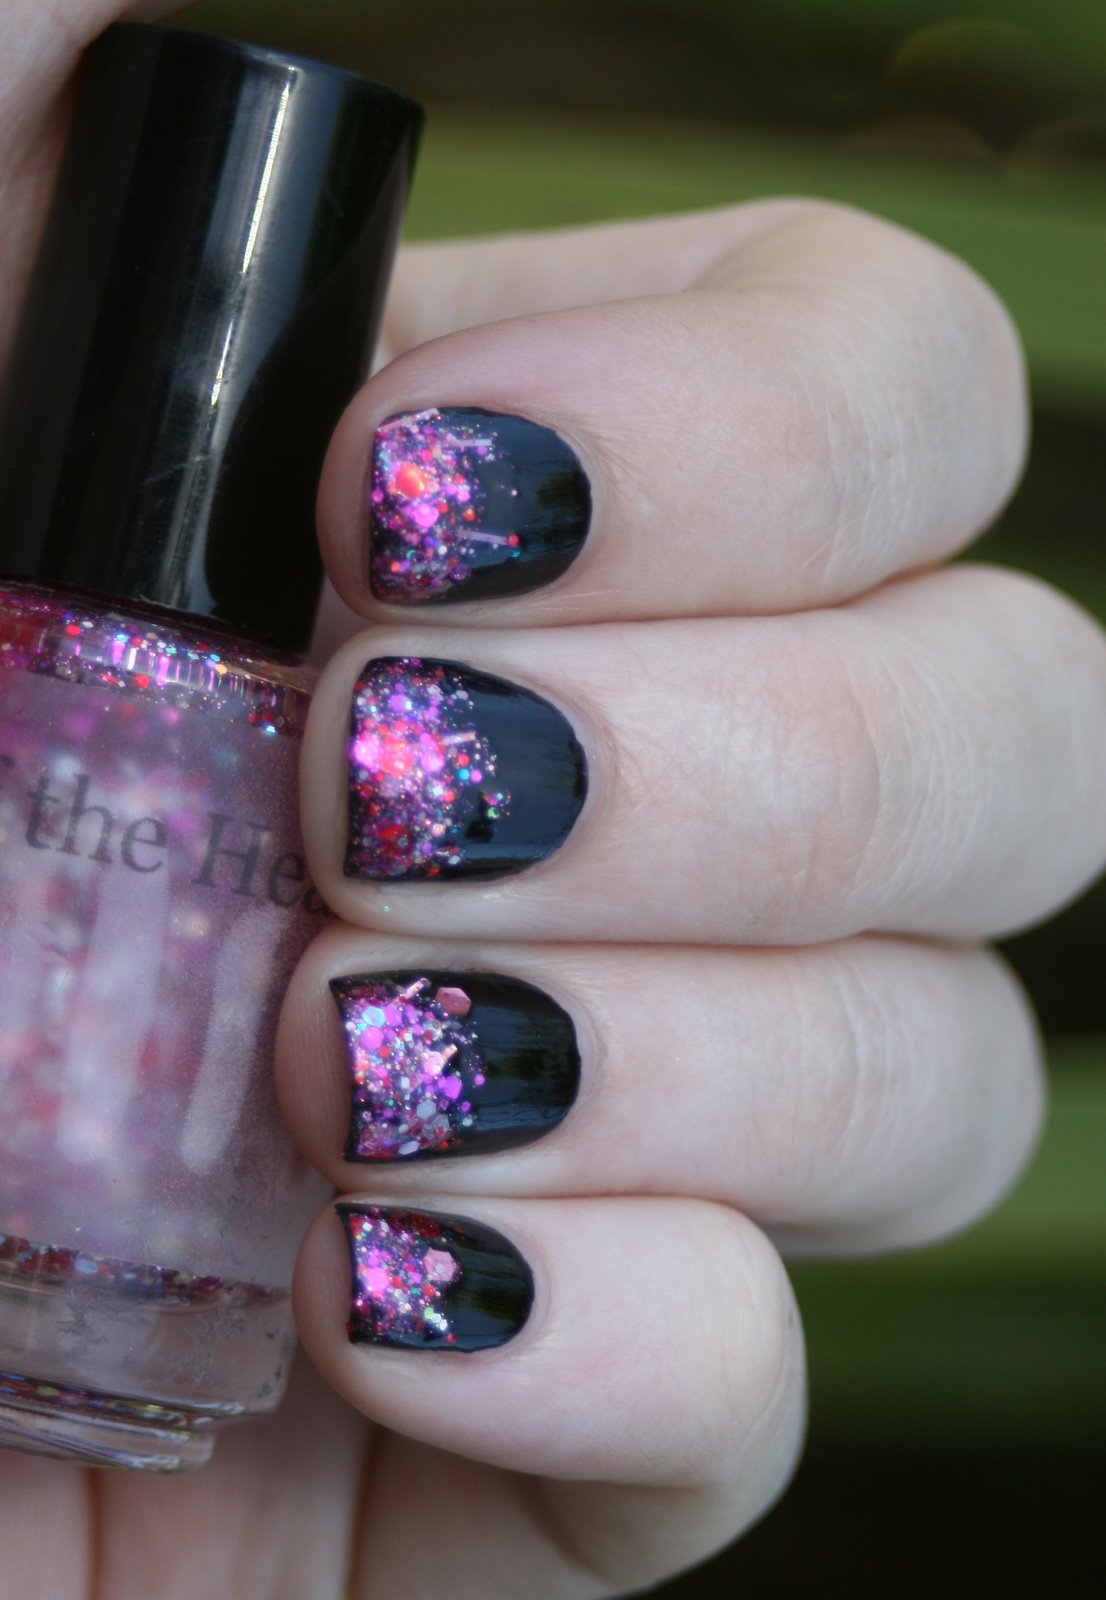 Pahlish Total Eclipse of the Heart gradient